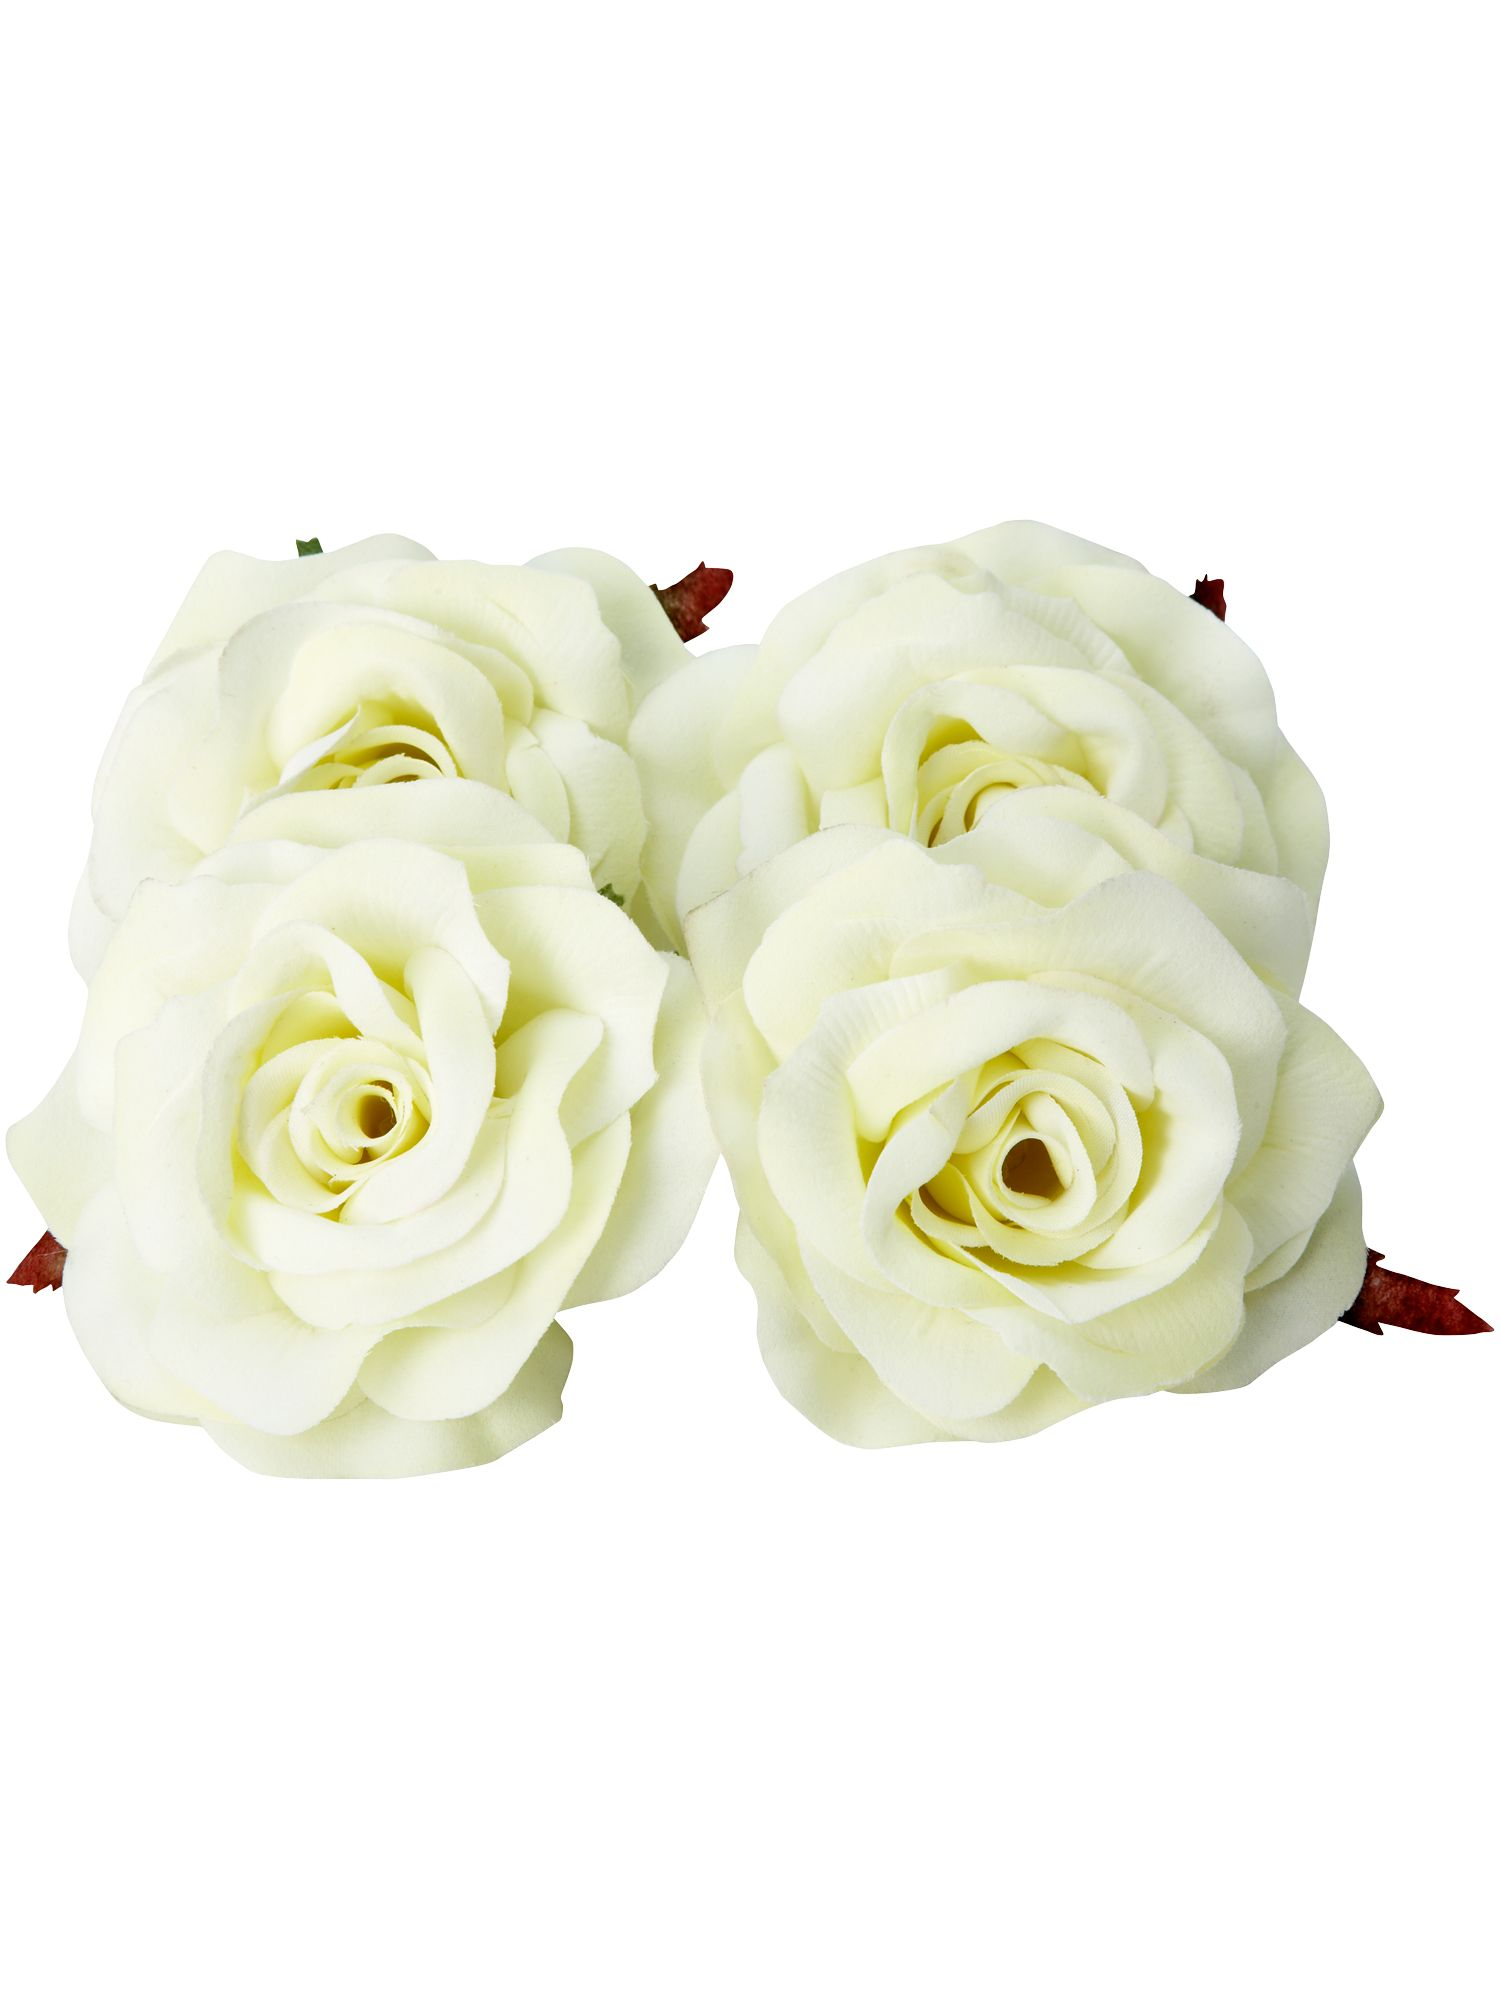 Renaissance set of four cream rose clips